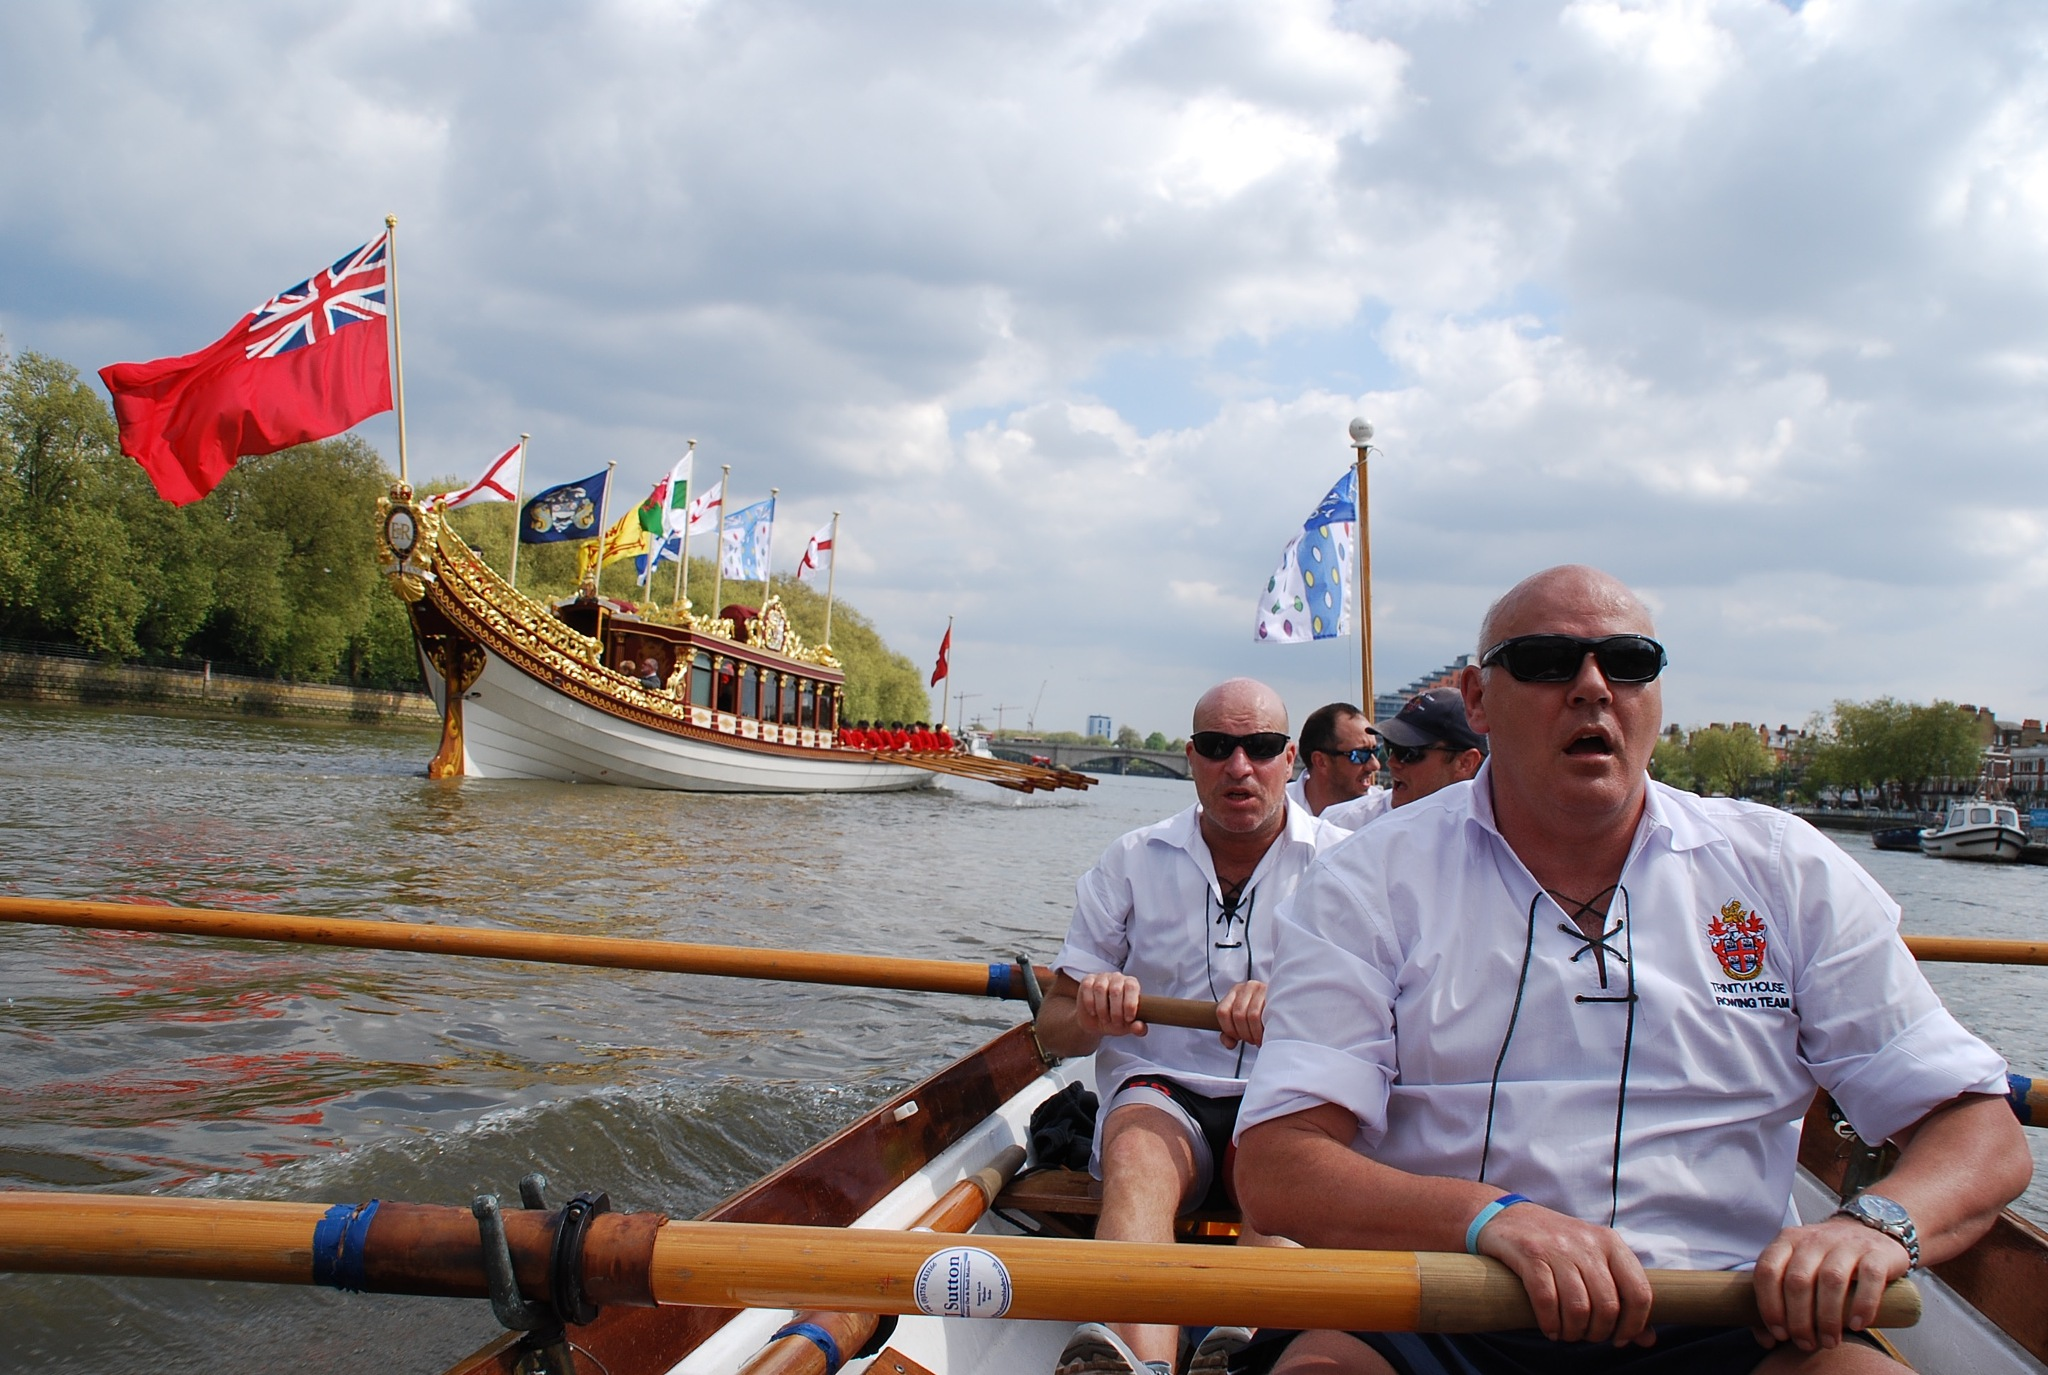 Rowing in the Tudor Pull in London by Joe Lane